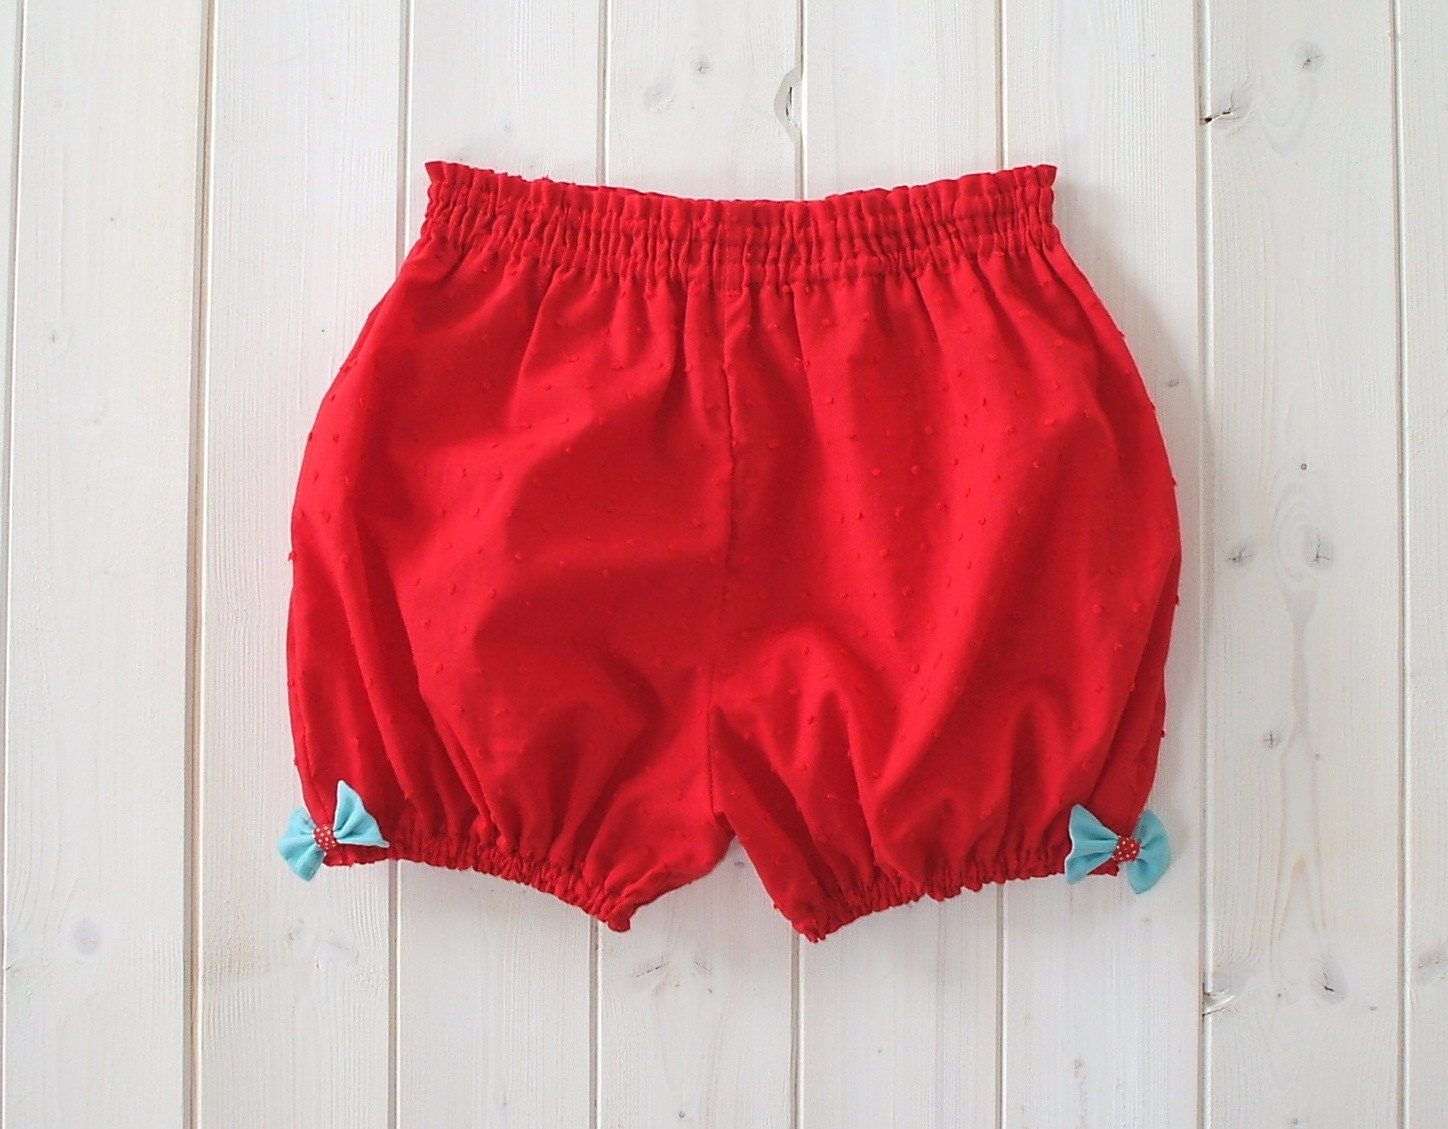 Red Bloomer Shorts With Aqua Blue Bows - Made To Order